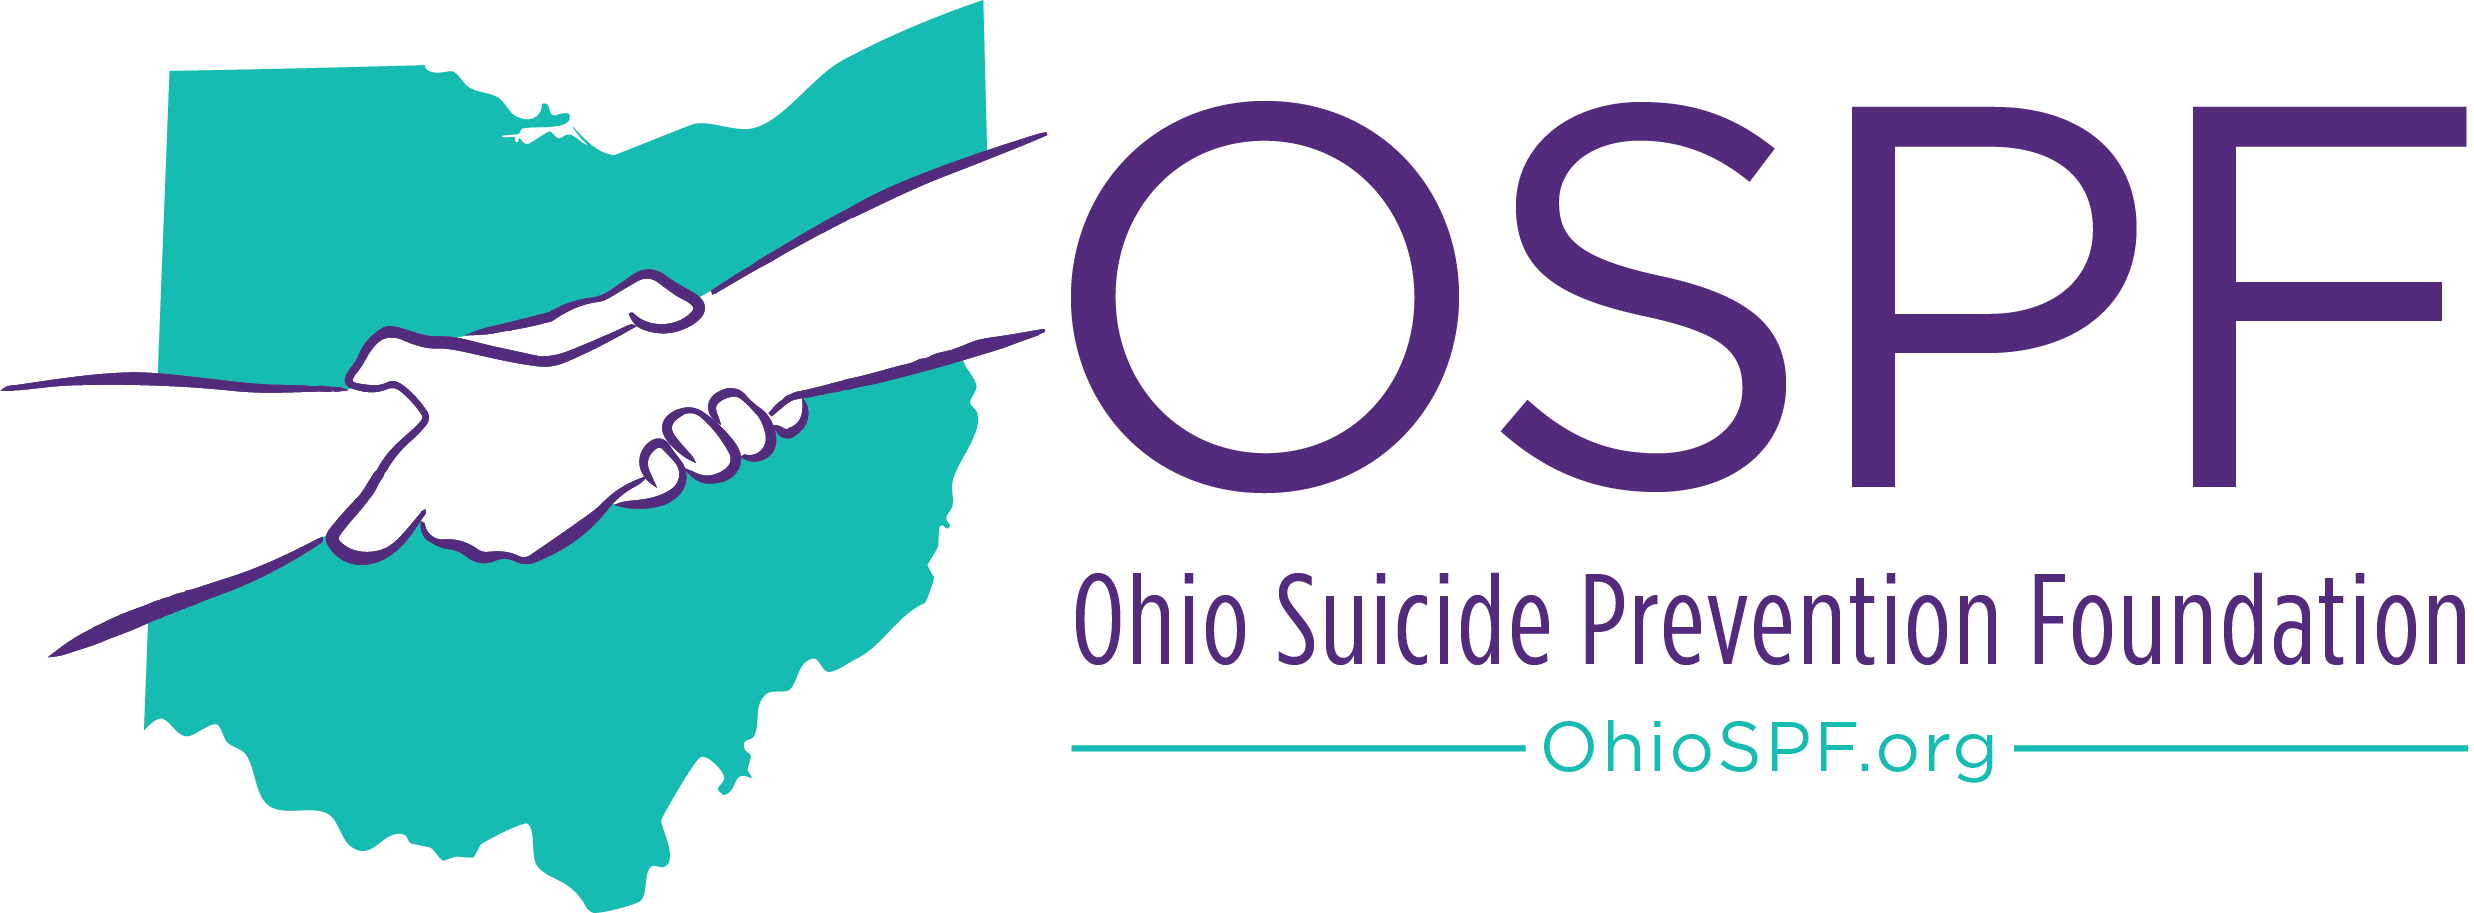 Collaborative Assessment & Management of Suicidality (in Columbus)